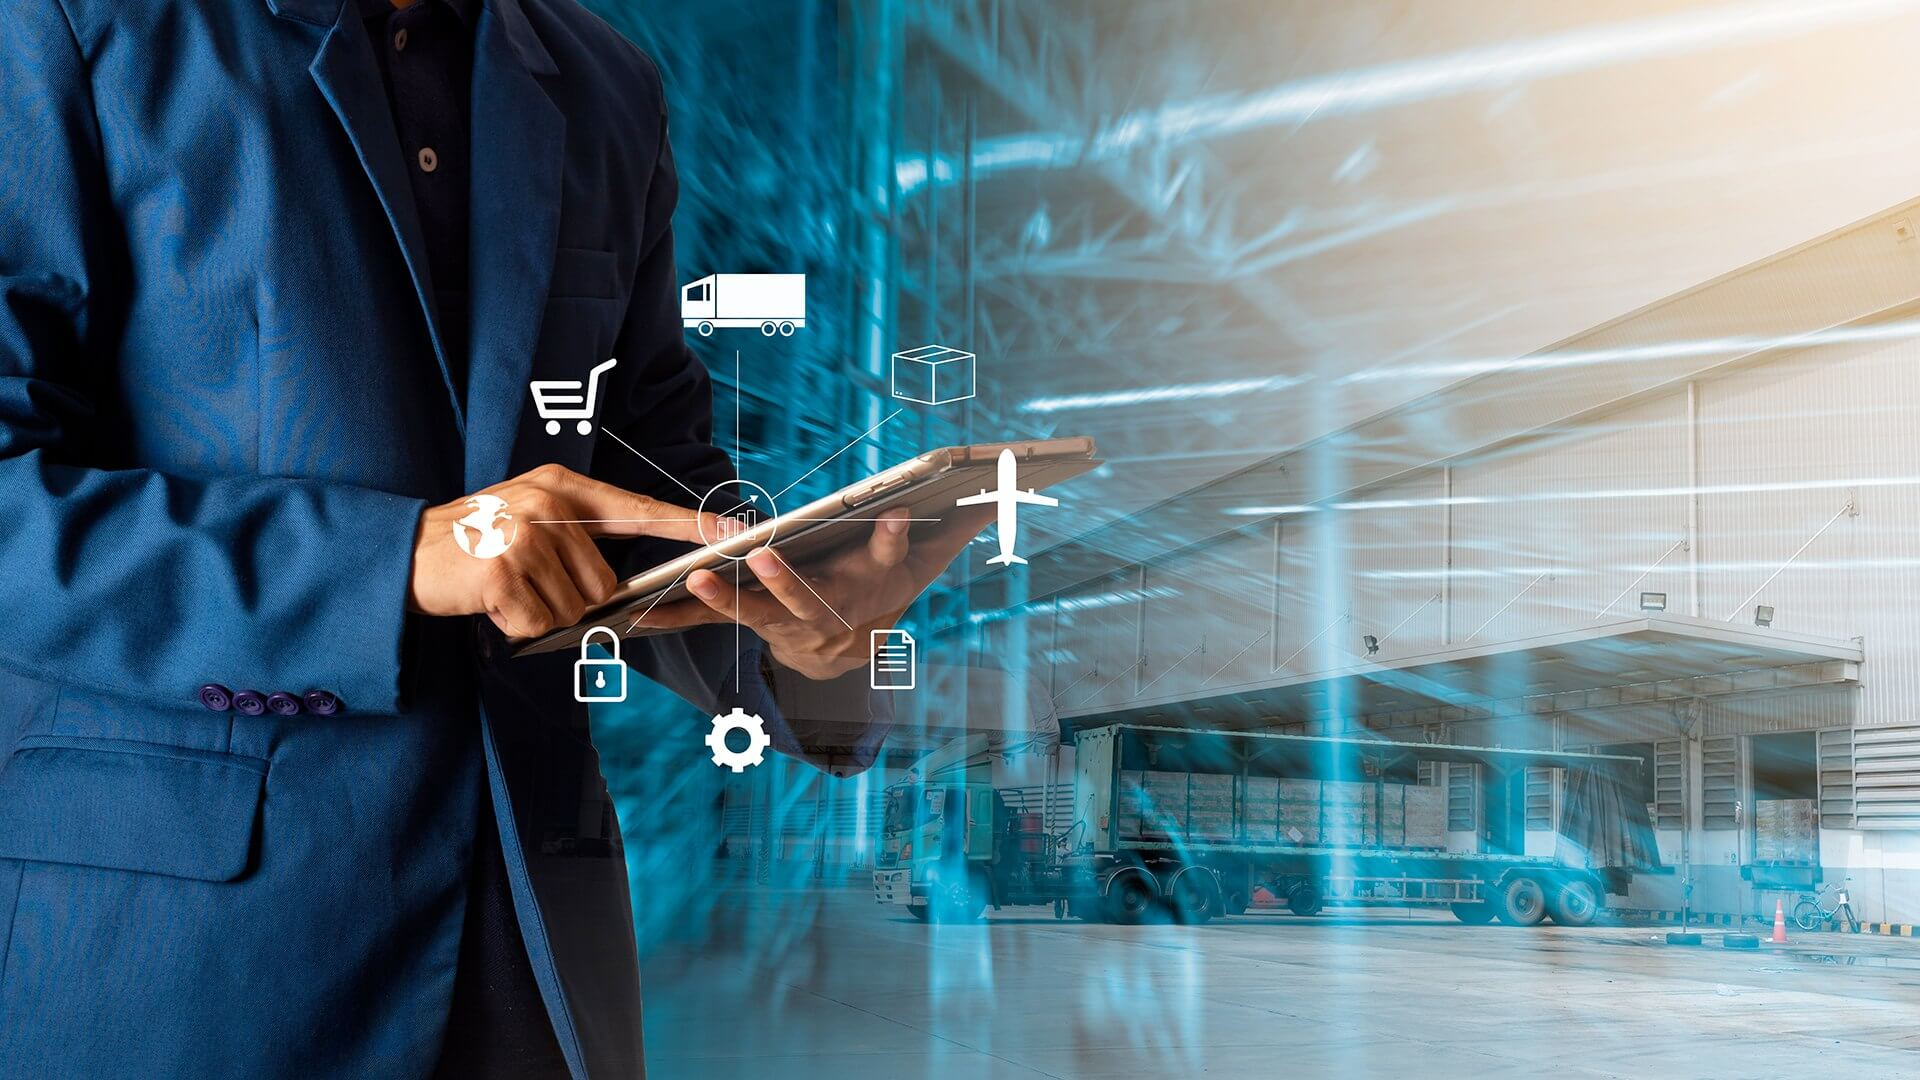 Buy Anything, Get Anywhere (BAGA) Omni Channel Retailing